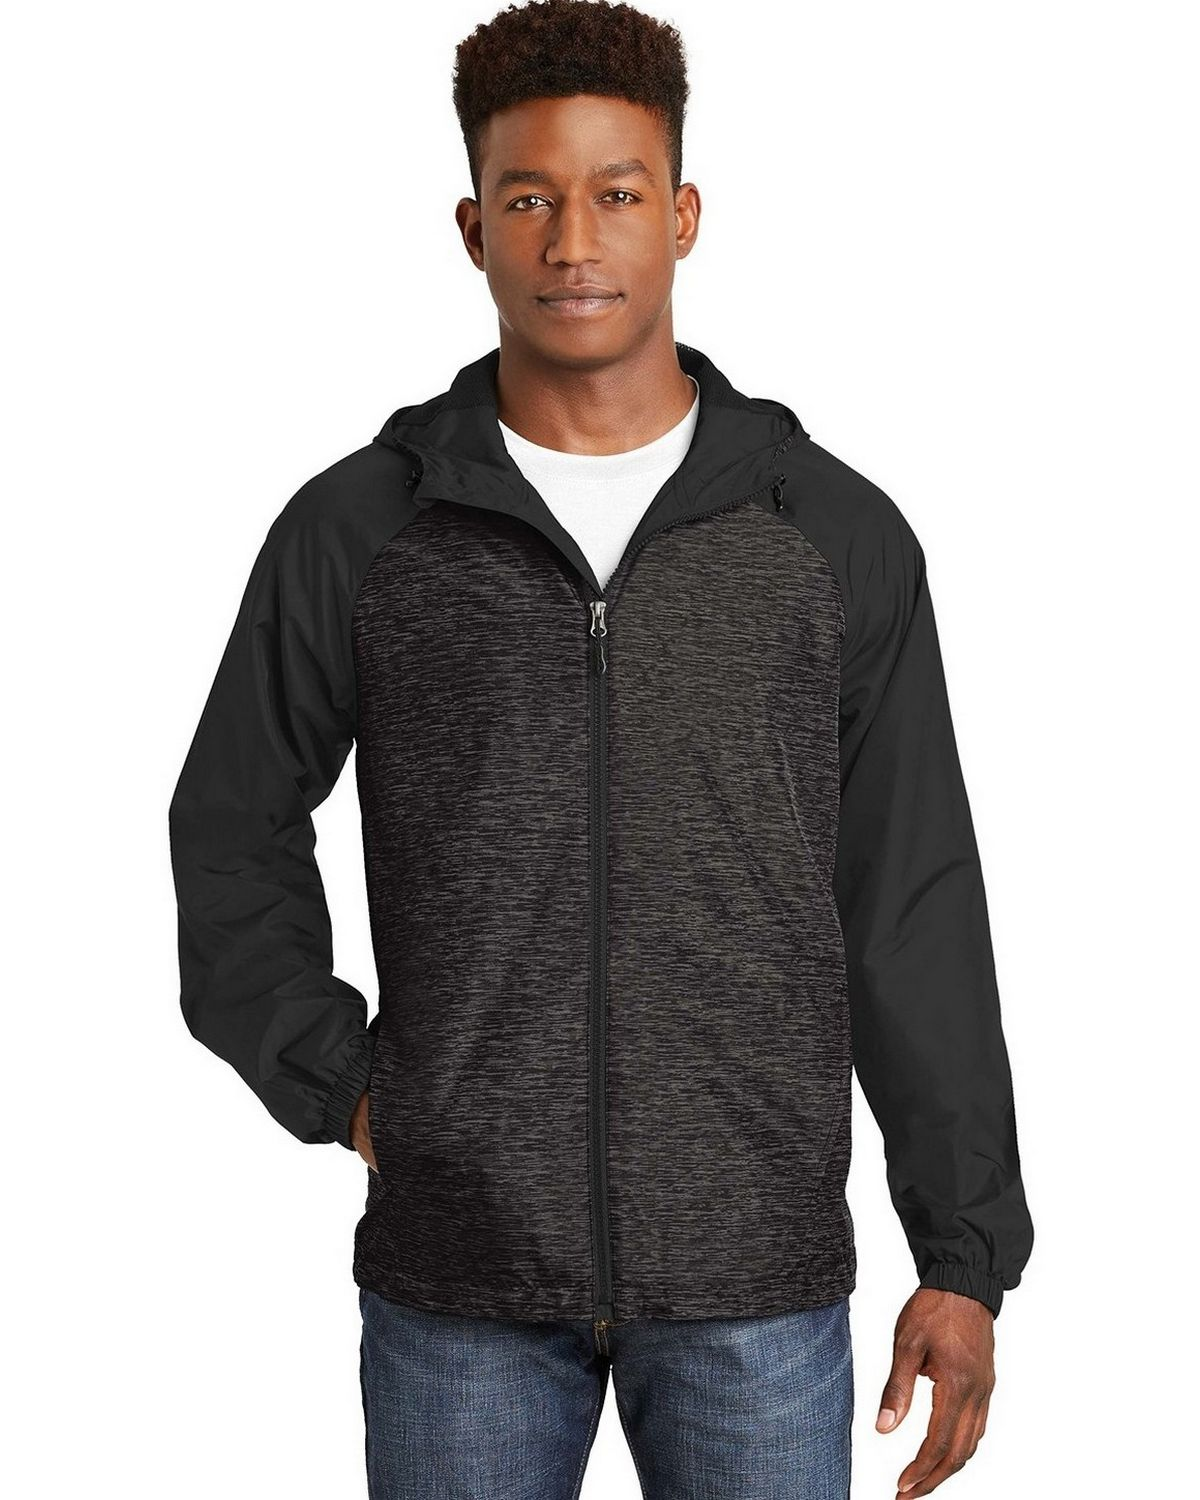 Sport-Tek JST40 Raglan Hooded Jacket - True Royal Heather/Black - L JST40